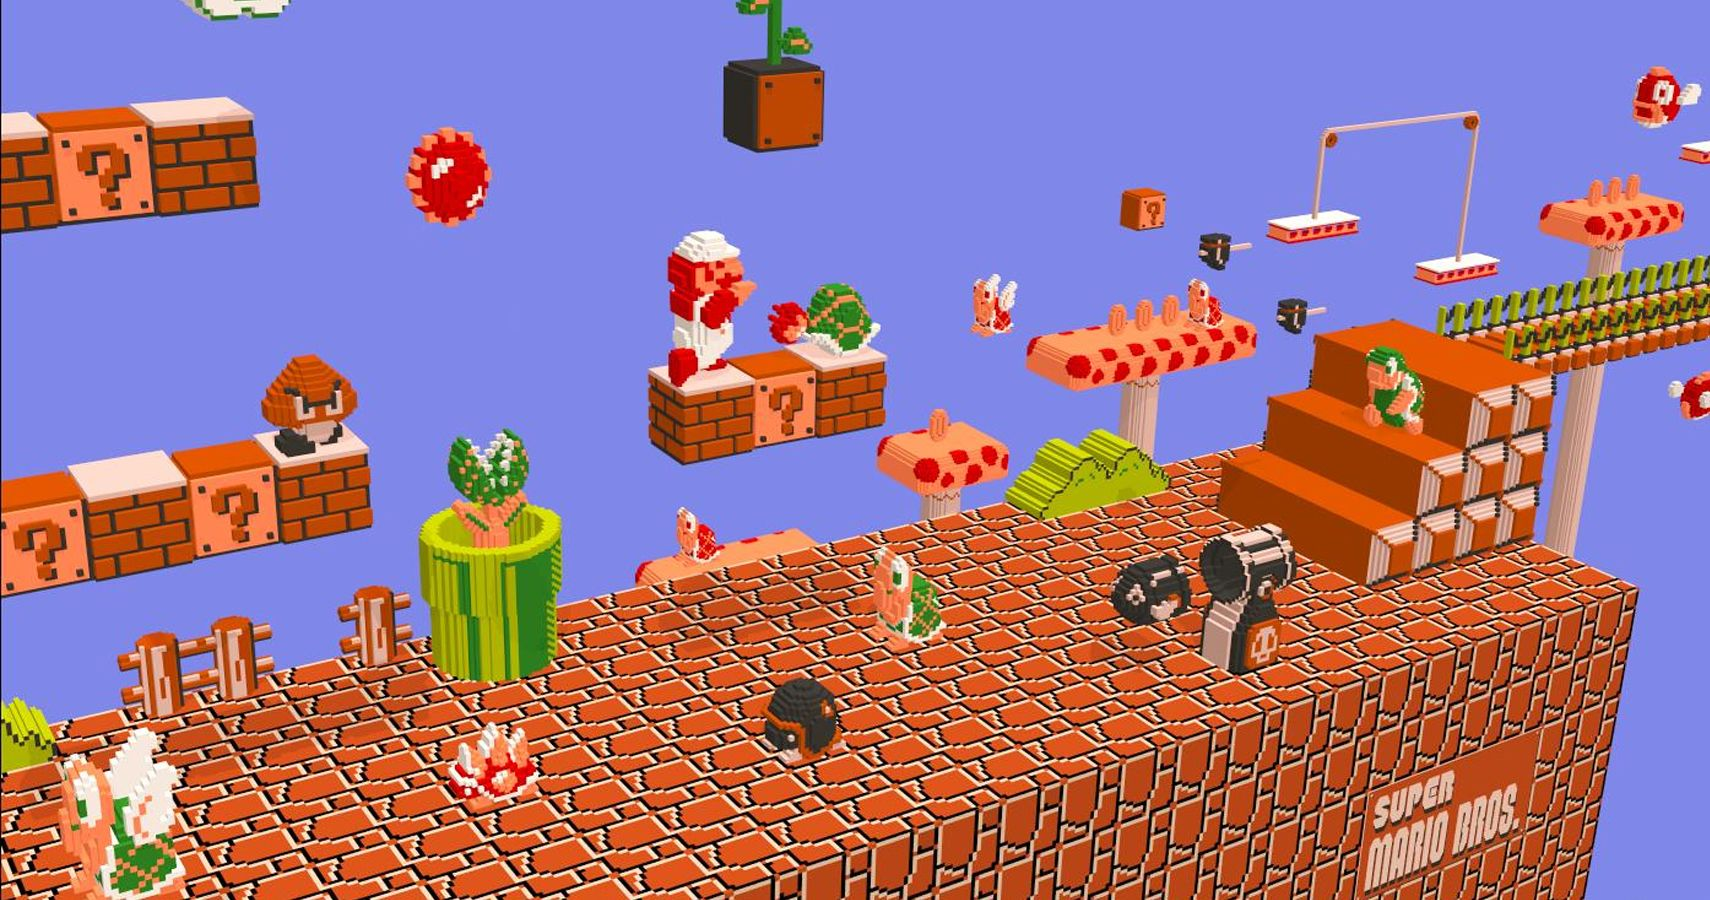 15 Things You Didn't Know About The Original Super Mario Bros